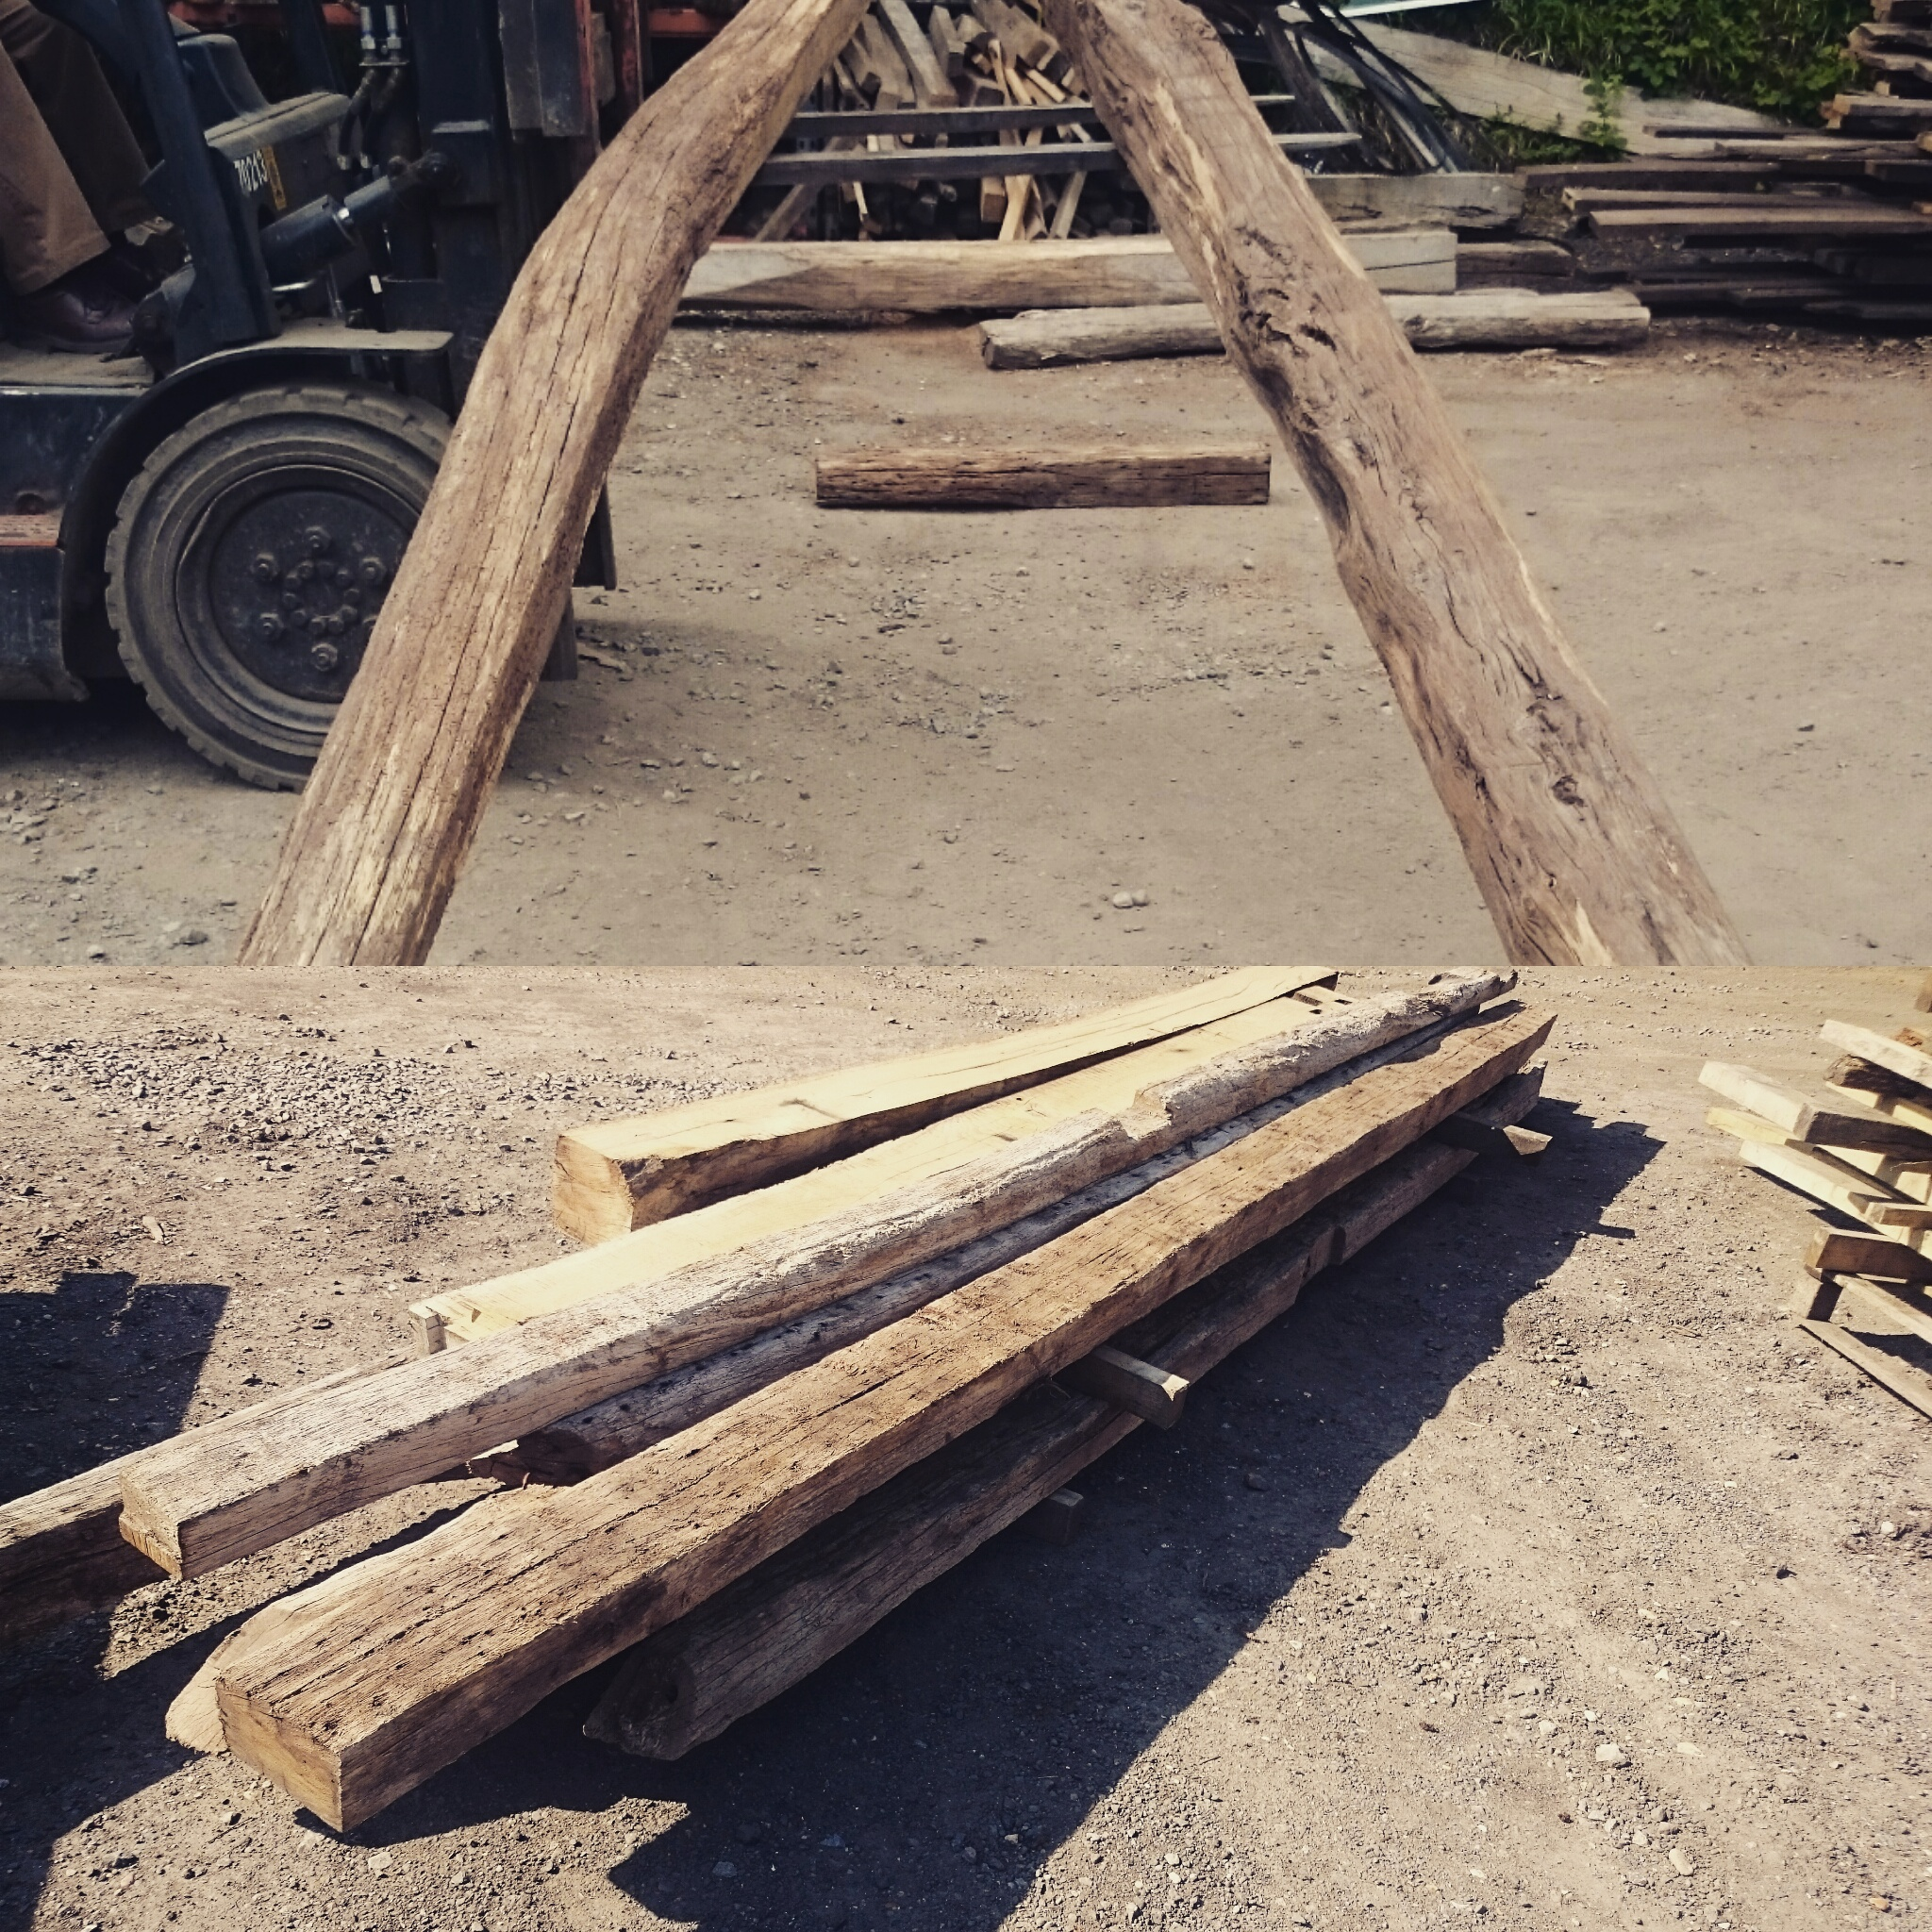 Once the beams have been selected they are cleaned, treated and stacked. An important part if this frame was the cruck braces (the large curved braces at the front) we were able to source these from an old barn in the Riberac region of France. We sent pictures to the client to make sure he was happy, and when we got the all clear, we began framing.